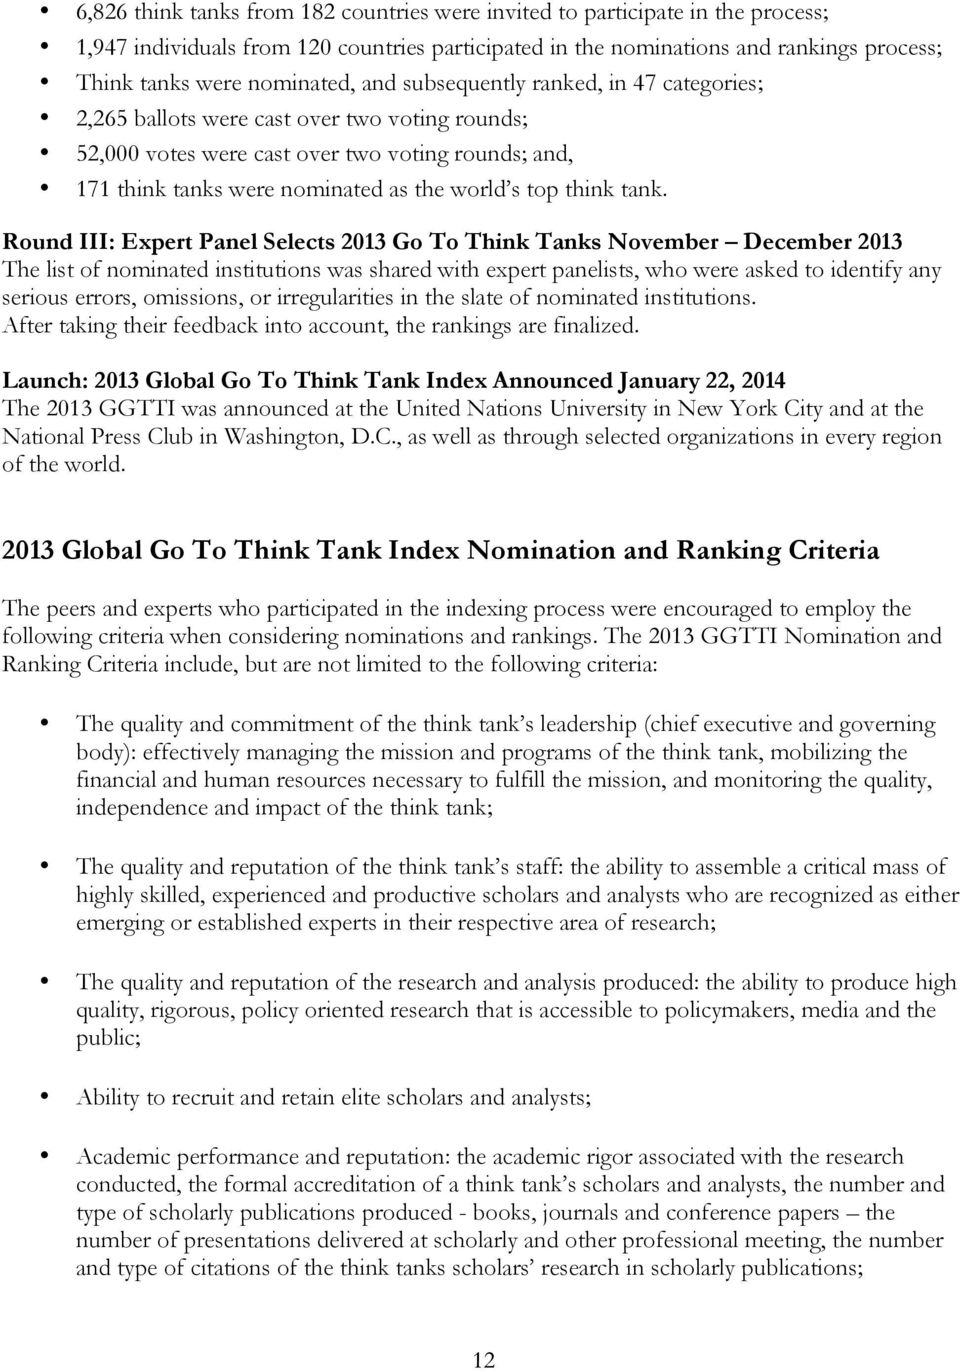 tank. Round III: Expert Panel Selects 2013 Go To Think Tanks November December 2013 The list of nominated institutions was shared with expert panelists, who were asked to identify any serious errors,